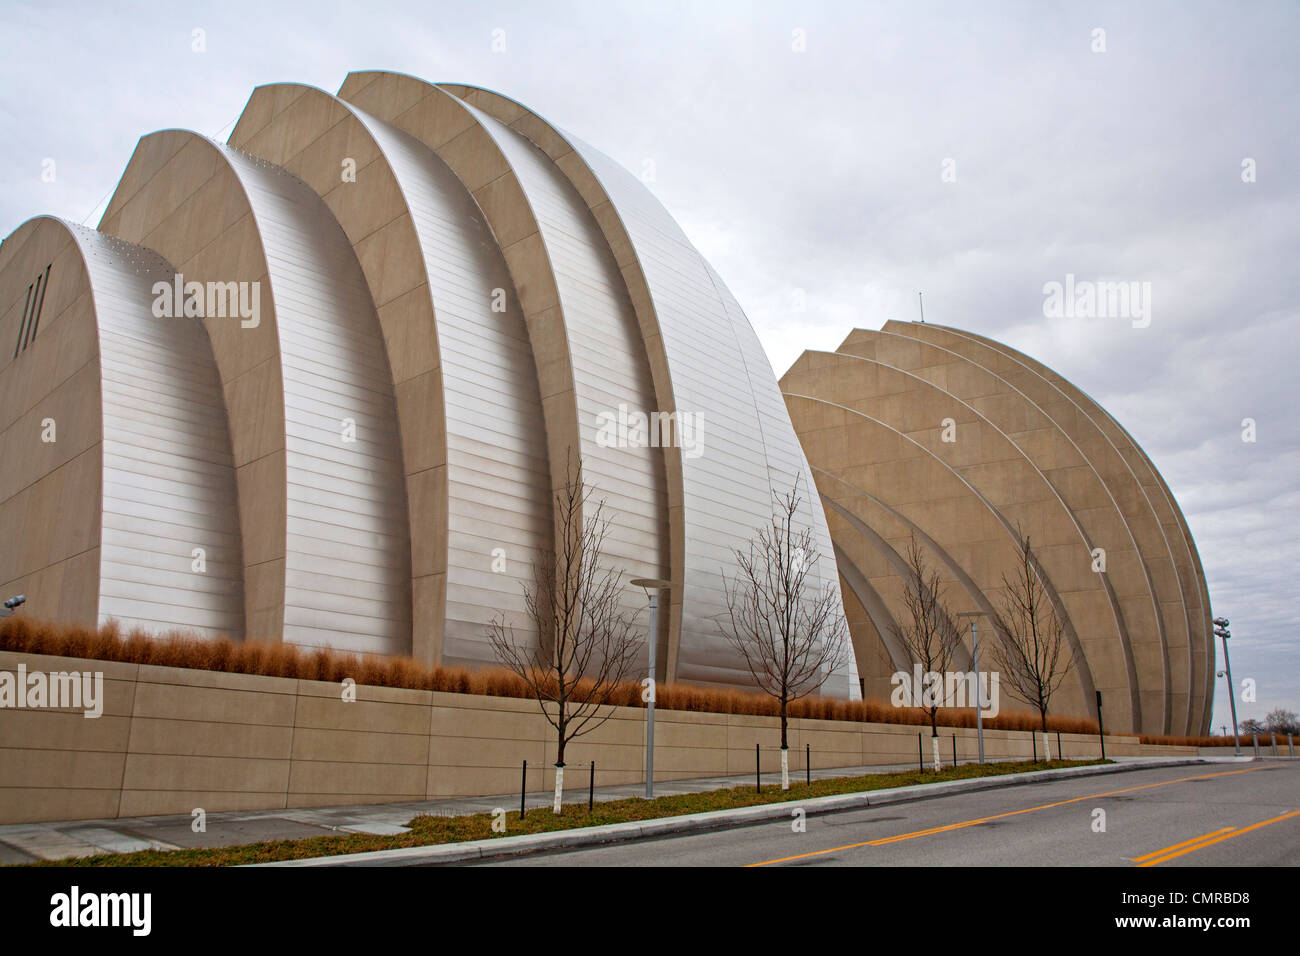 Kauffman Center for the Performing Arts in Kansas City, MO - Stock Image